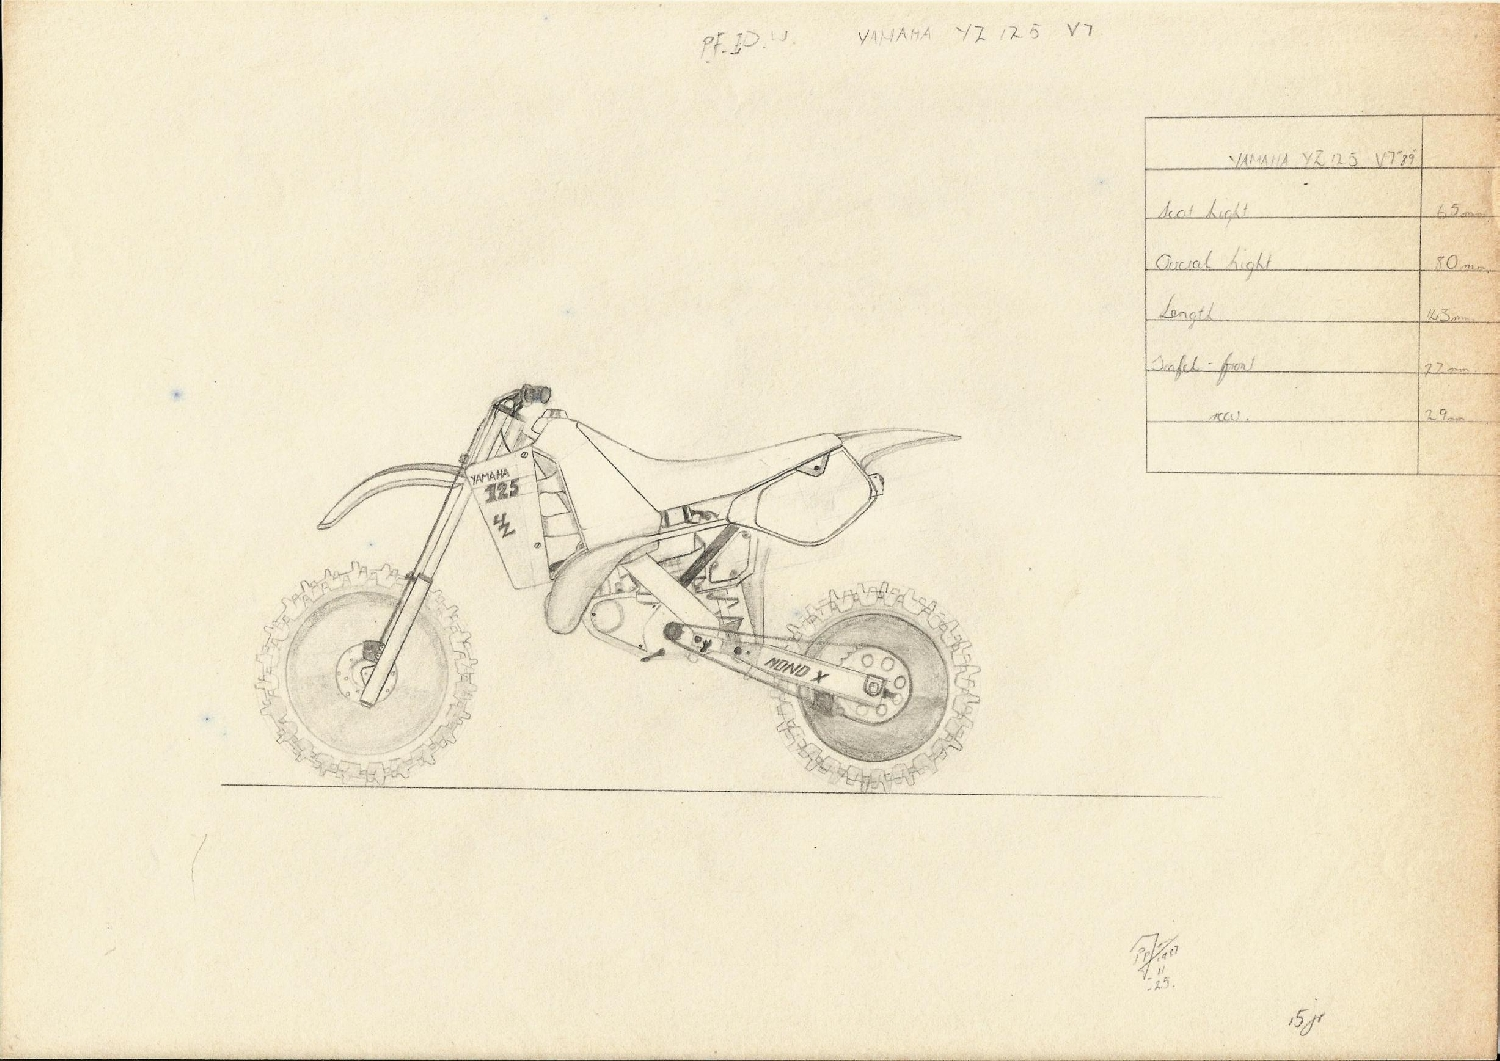 19871125 YAMAHA YZ125 CONCEPT FOR 1989-3731.jpg